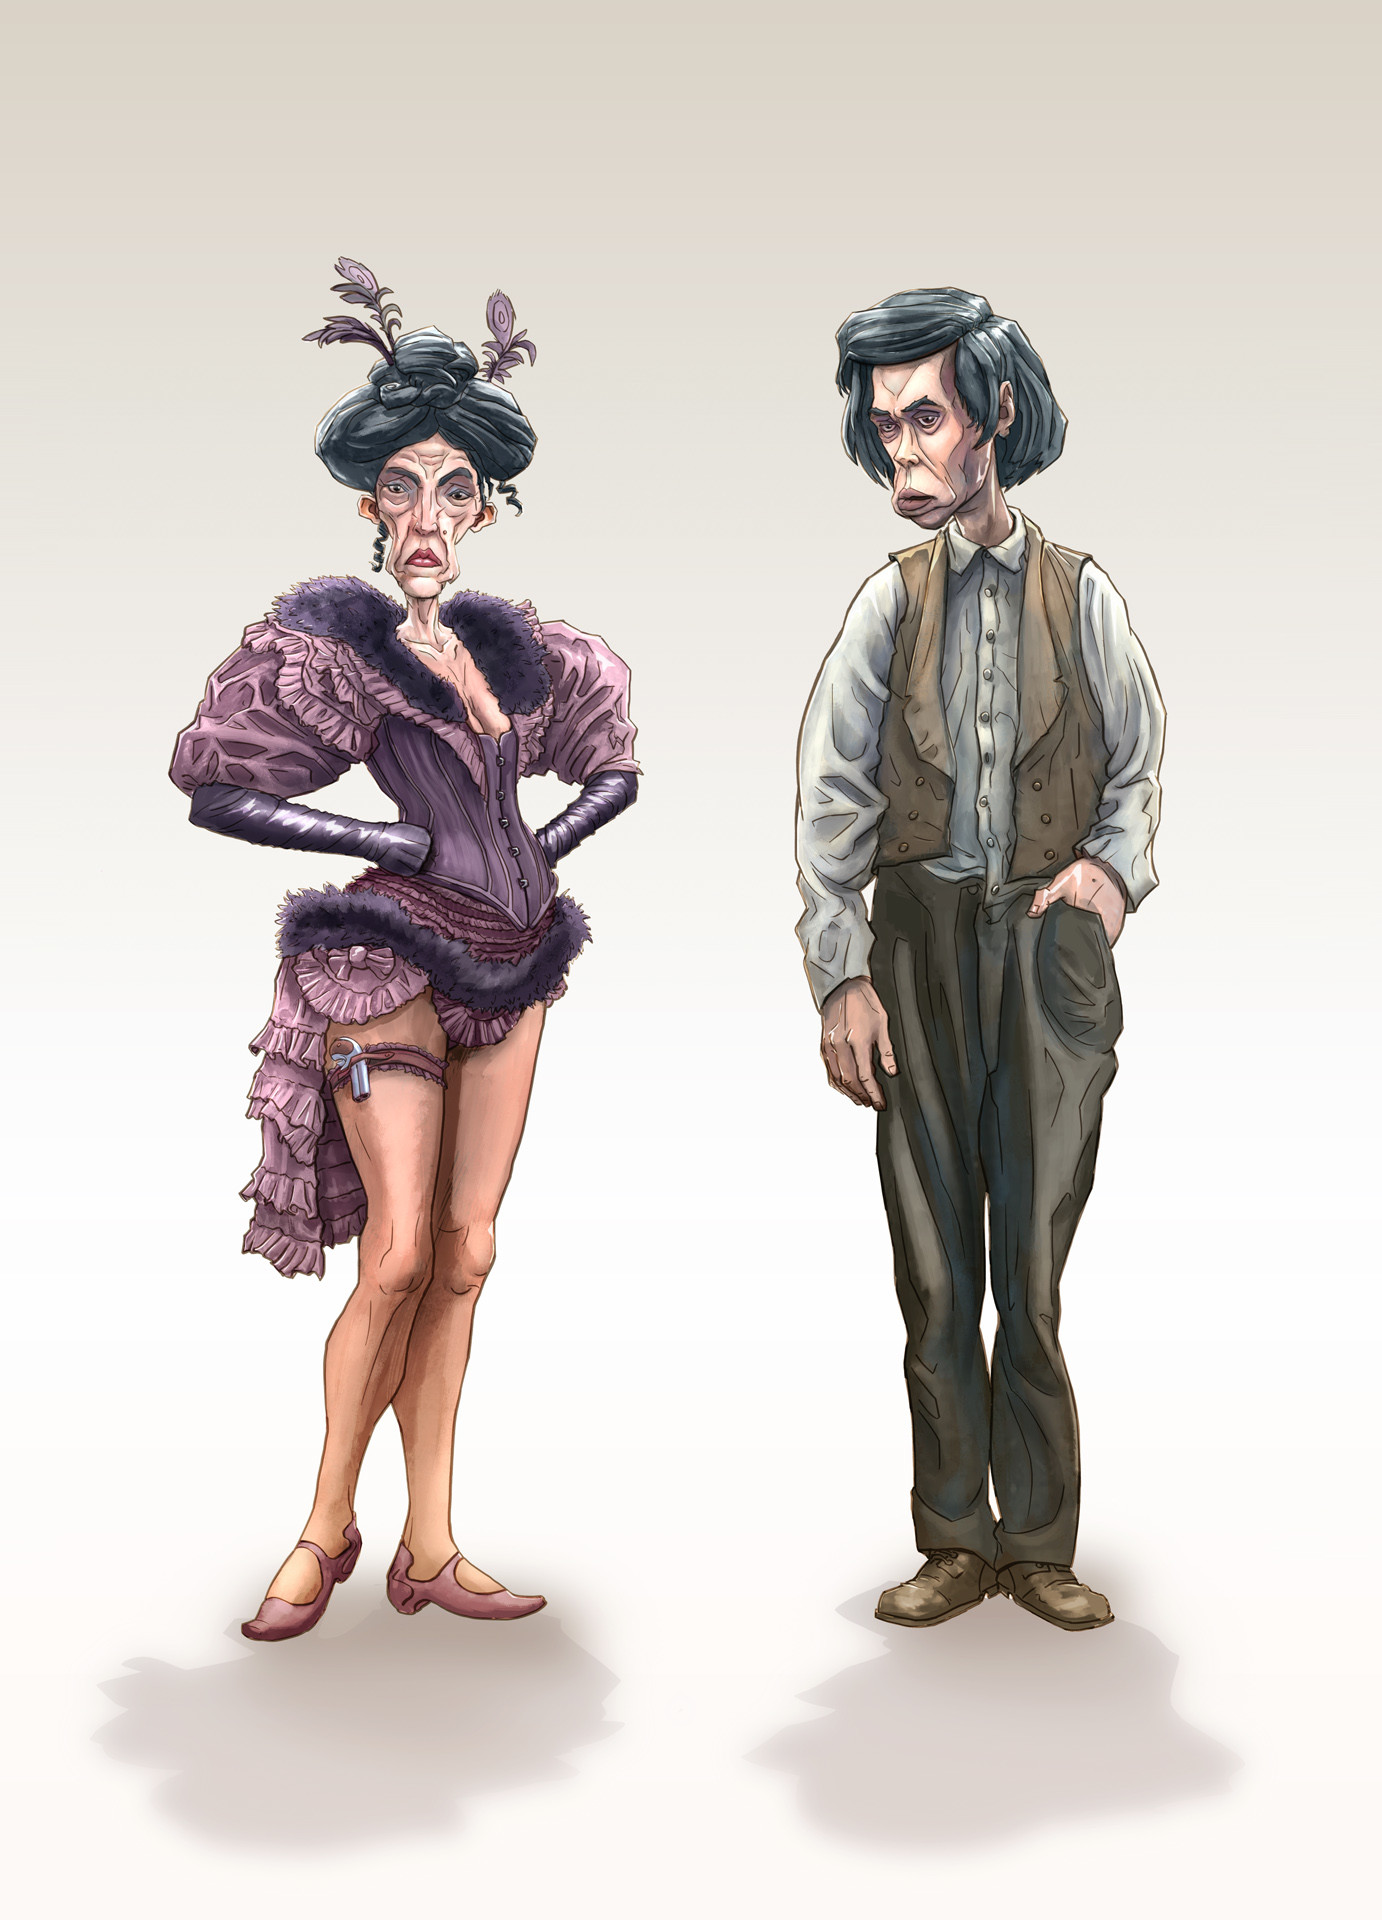 The Townpeople: Loretta Stoshki aka 'Peach' and Leo Stoshki aka 'The Drummer' (He is the Main Character)